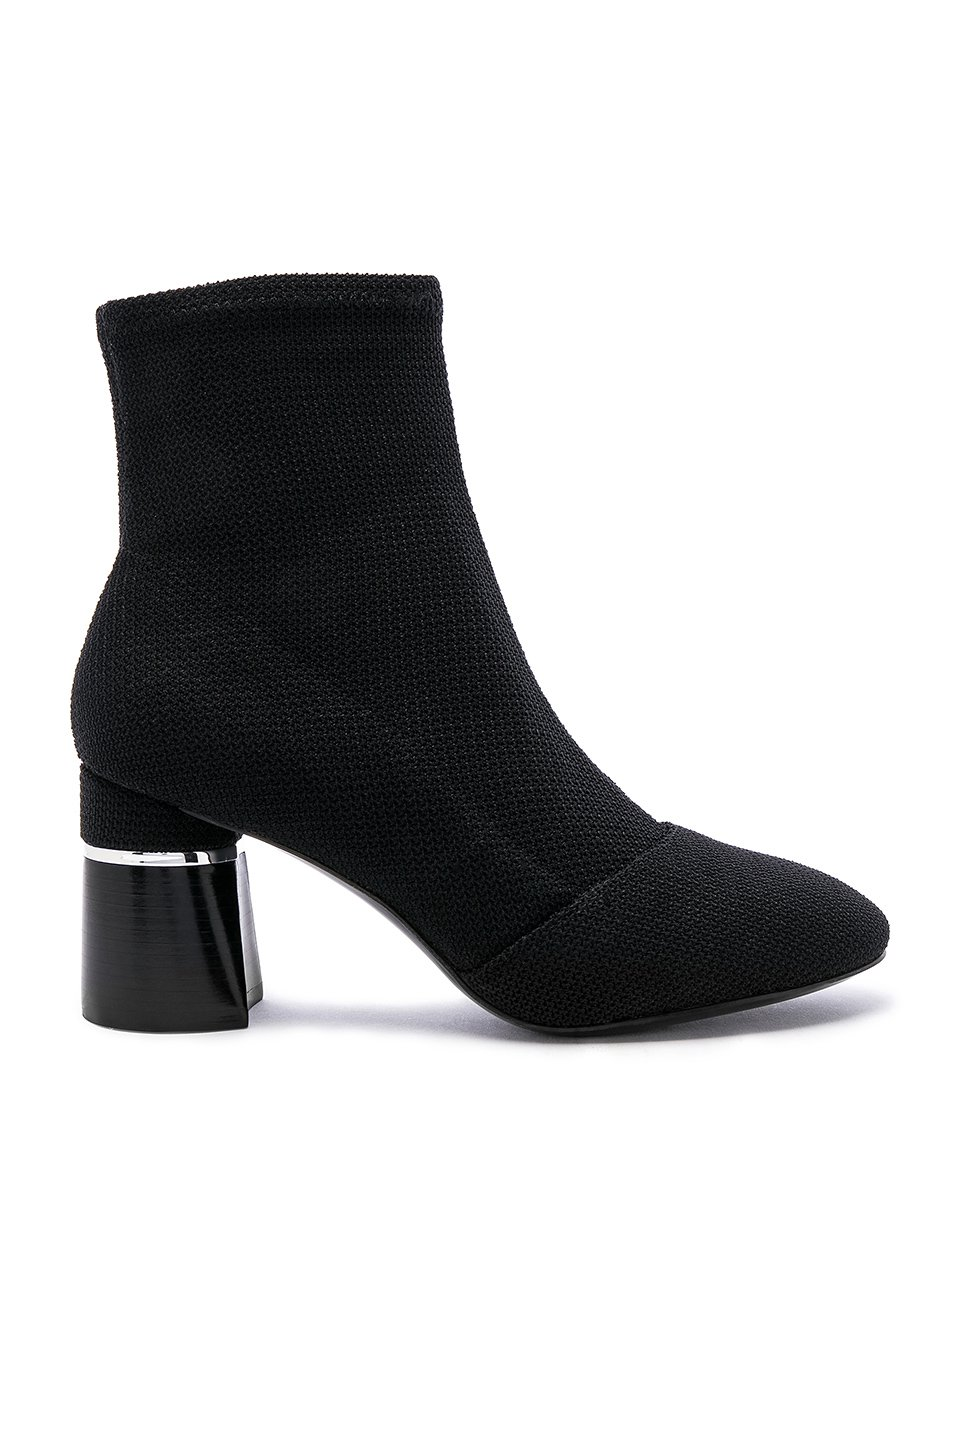 70MM Stretch Ankle Boot